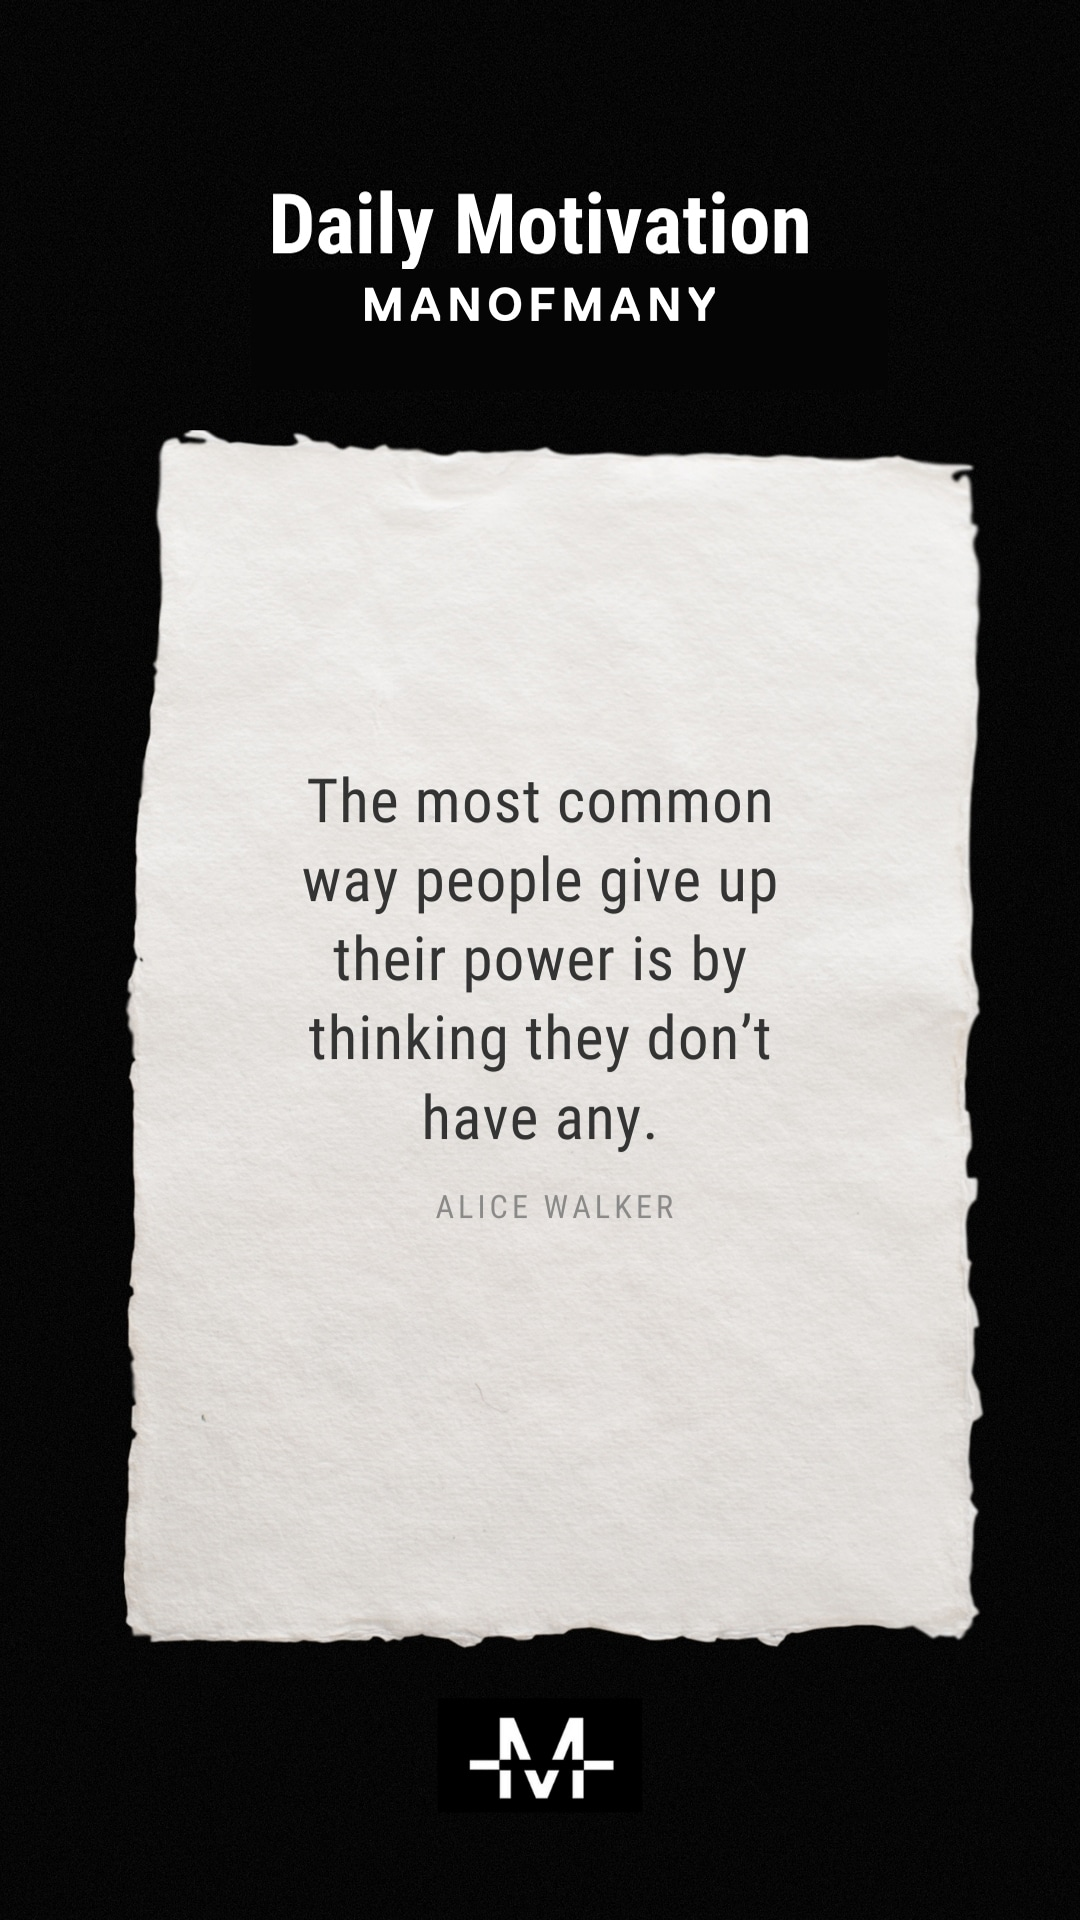 The most common way people give up their power is by thinking they don't have any. –Alice Walker quote